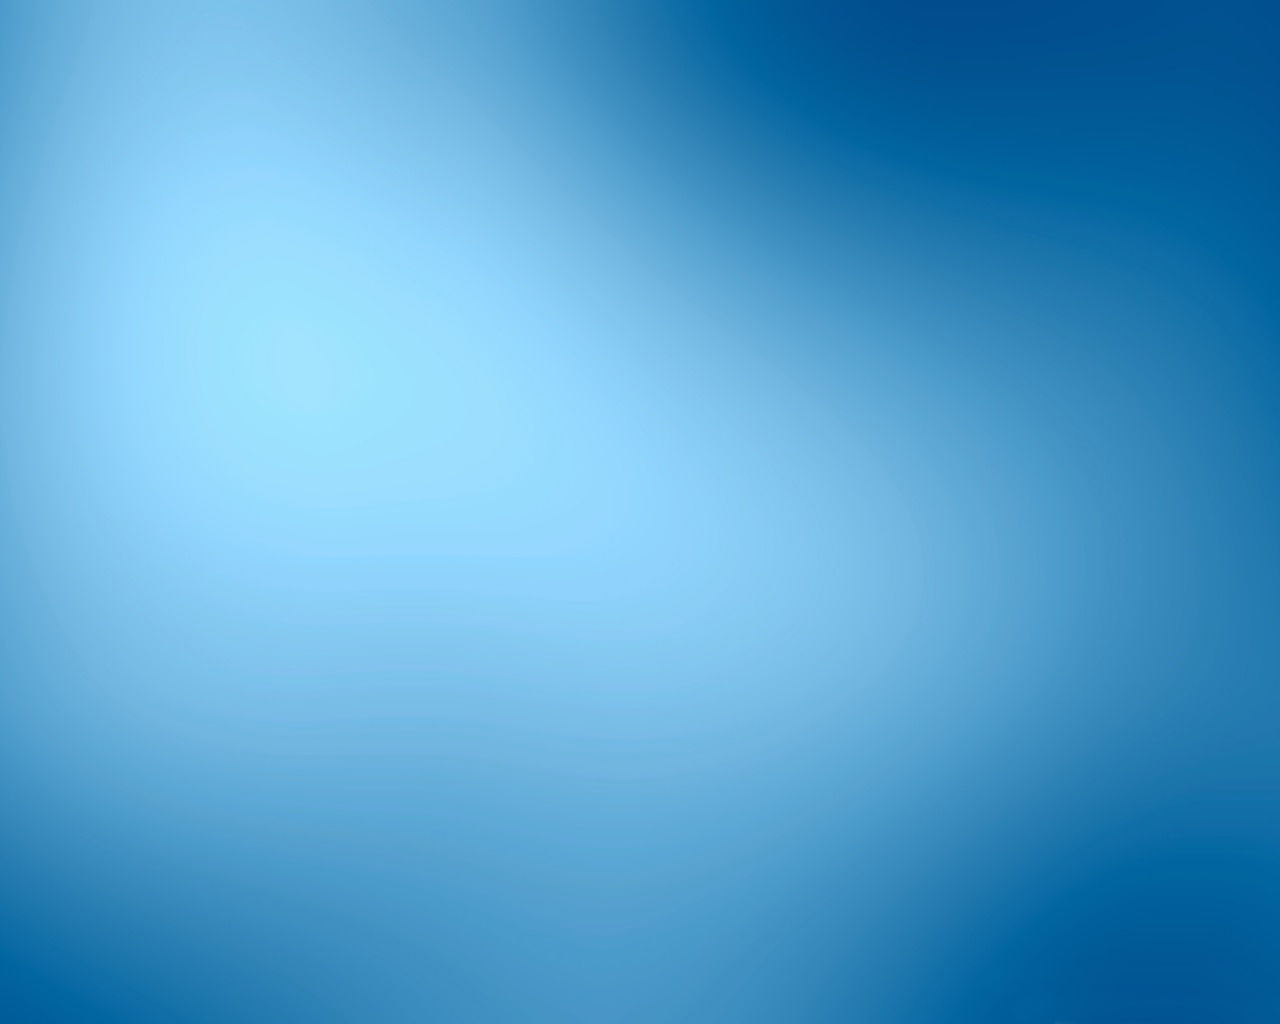 simple_blue_background-wallpaper-1280x1024